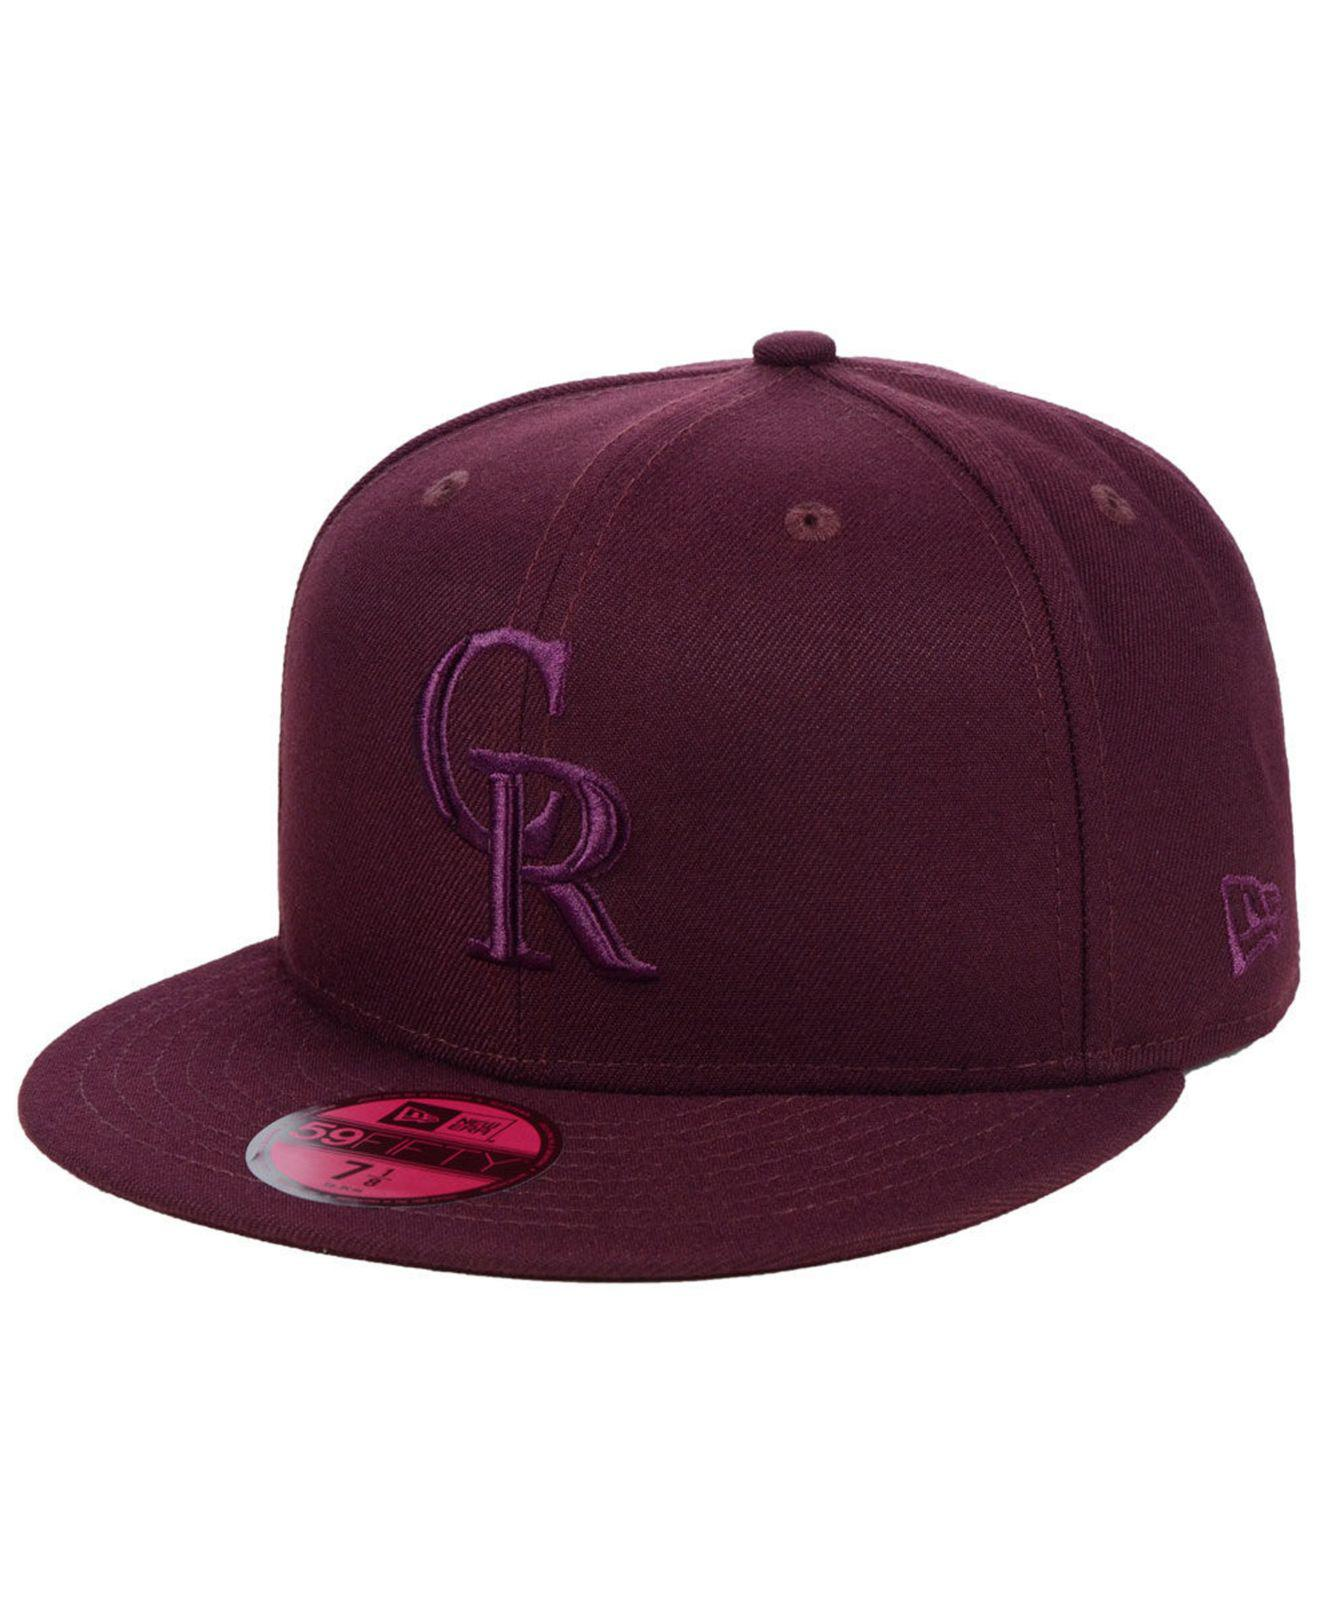 finest selection 439f7 168cb ... promo code for ktz. mens purple colorado rockies fall prism pack  59fifty fitted cap 2b70c